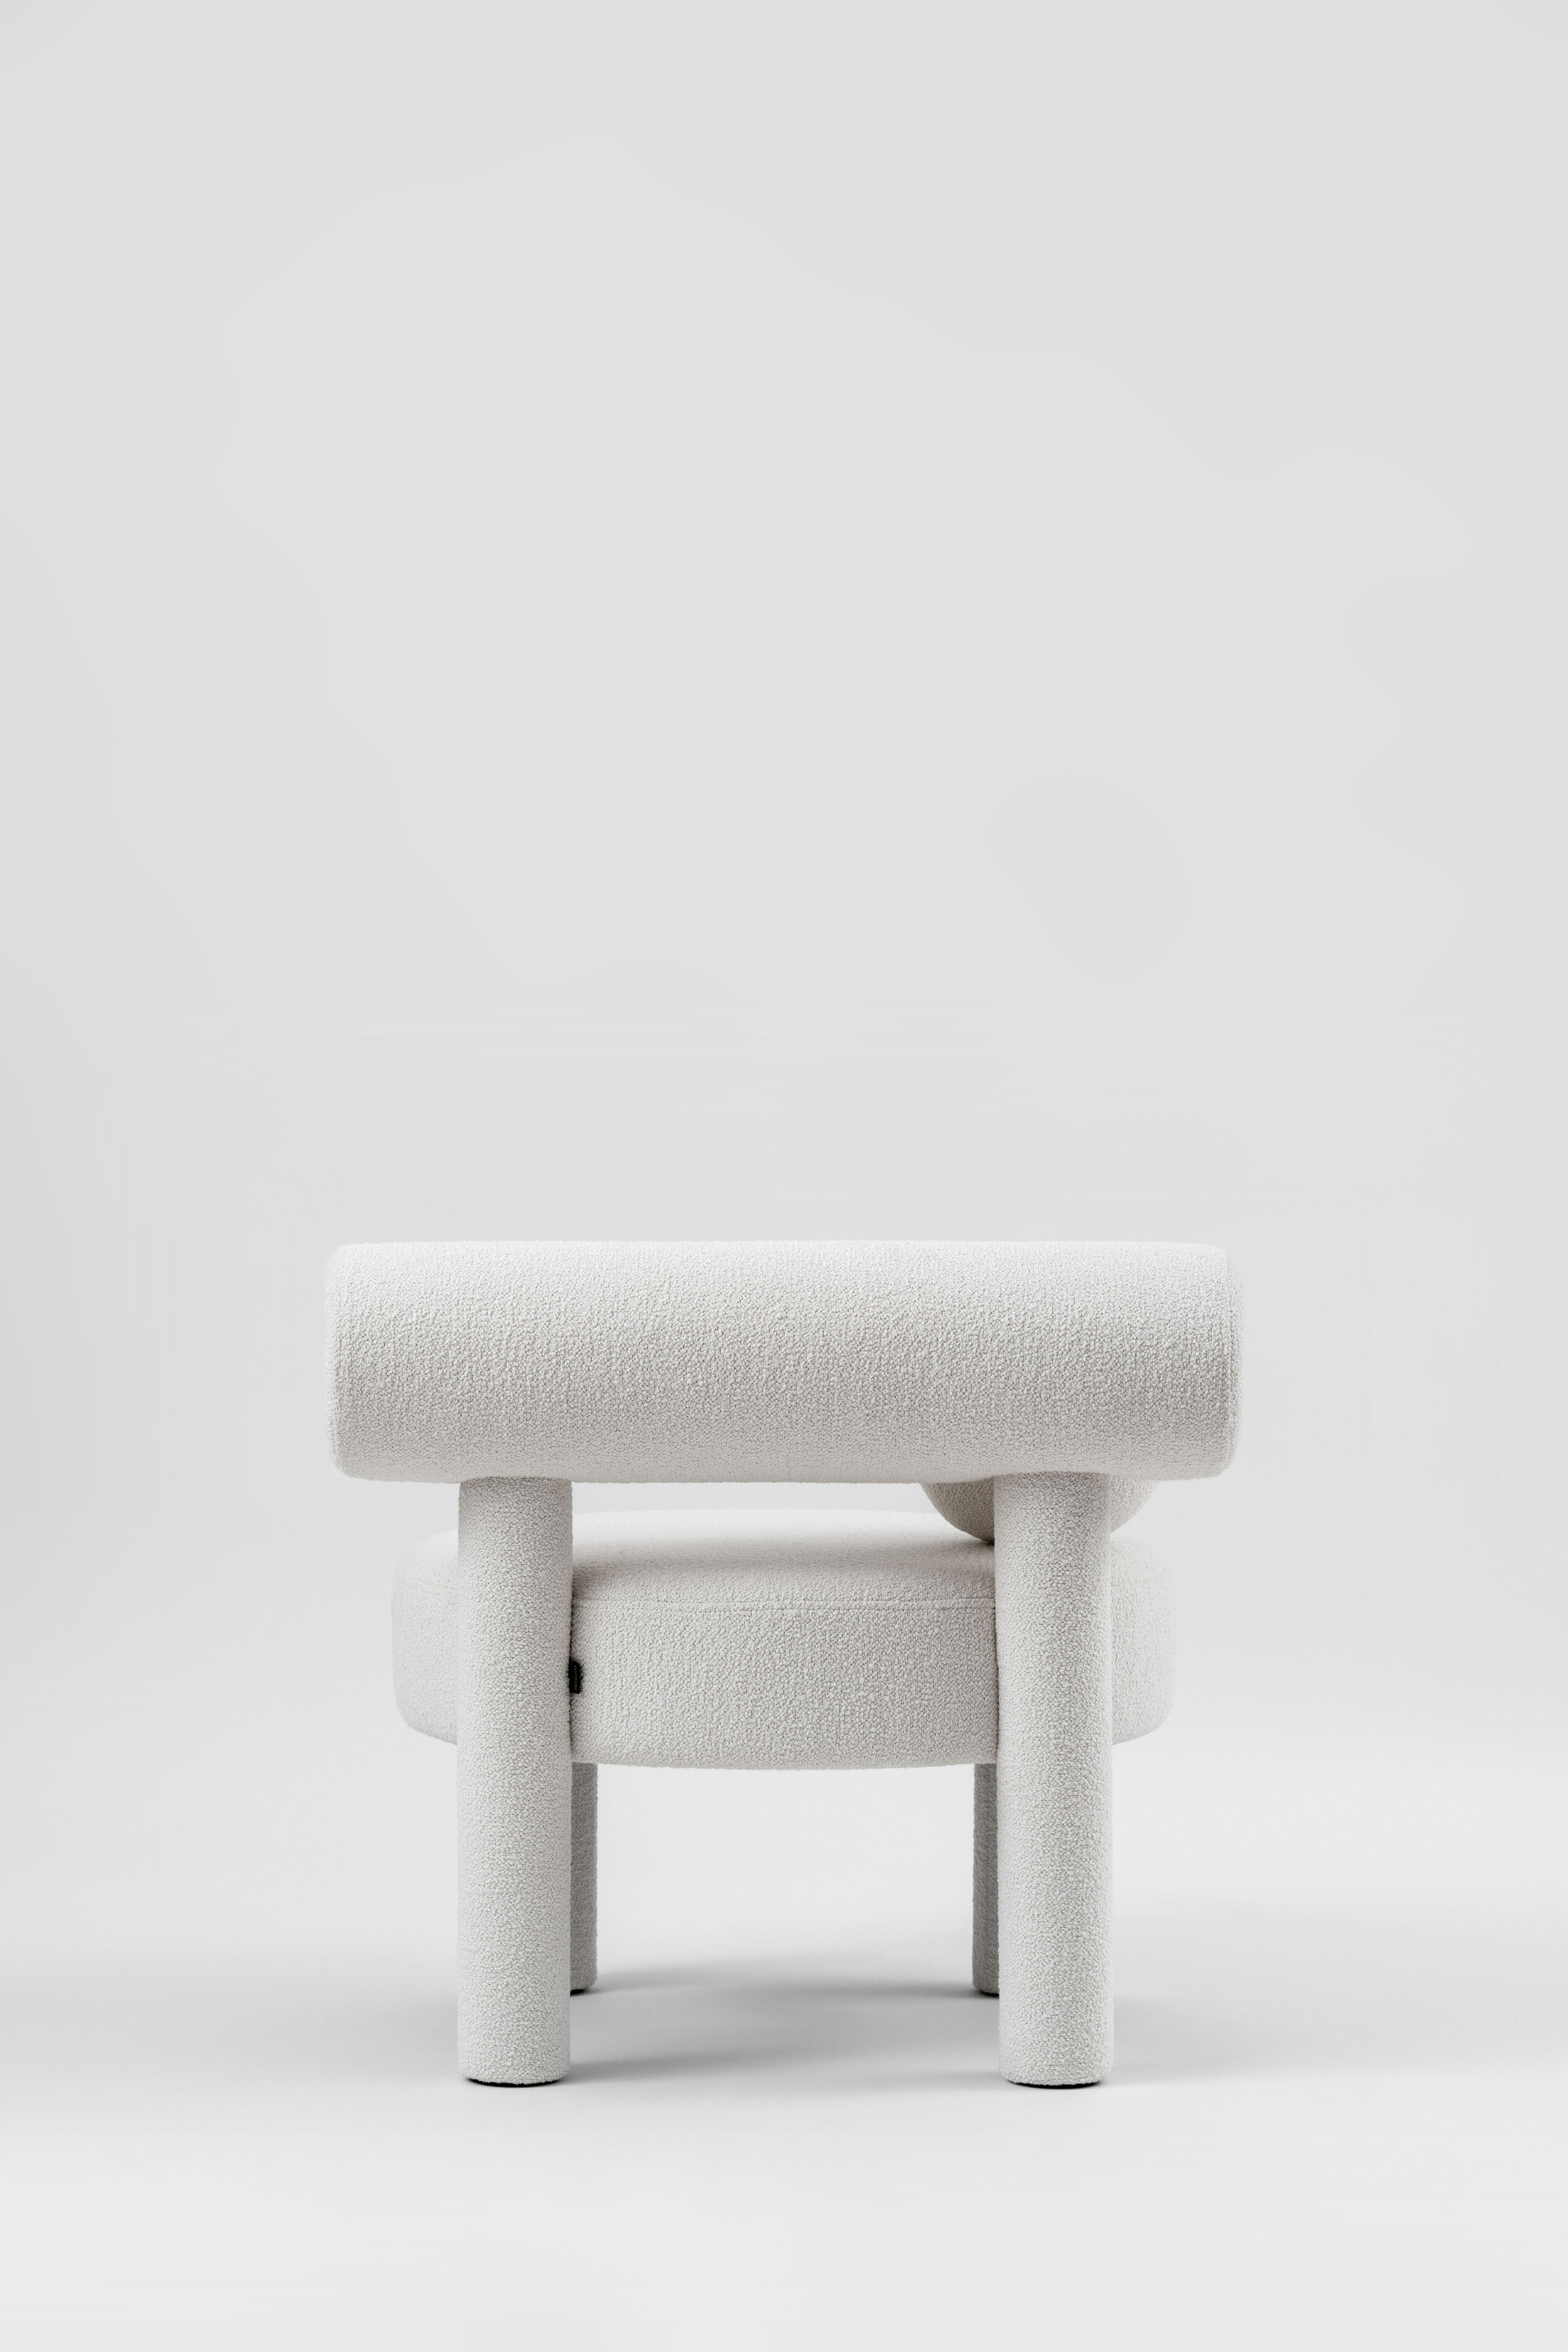 """Low Chair Gropius CS1 in Boucle Fabric - New NOOM furniture collection is dedicated to the 100th anniversary of the founding of the Bauhaus School in Germany. Ideas of functionalism and conciseness, the combination of craft and art, buildings and objects formed by a composition of simple geometric shapes, are still relevant. NOOM furniture is a tribute to the great thinkers who formed the modernist principles and brought them to life.   The designer has """"gathered"""" the shape of this chair from balls and cylinders. A round pillow and an ottoman appeal to interact: to pump, to play, to bubble.  All products in the collection are called by names of famous modernist artists and architects.   Matter of Stuff"""